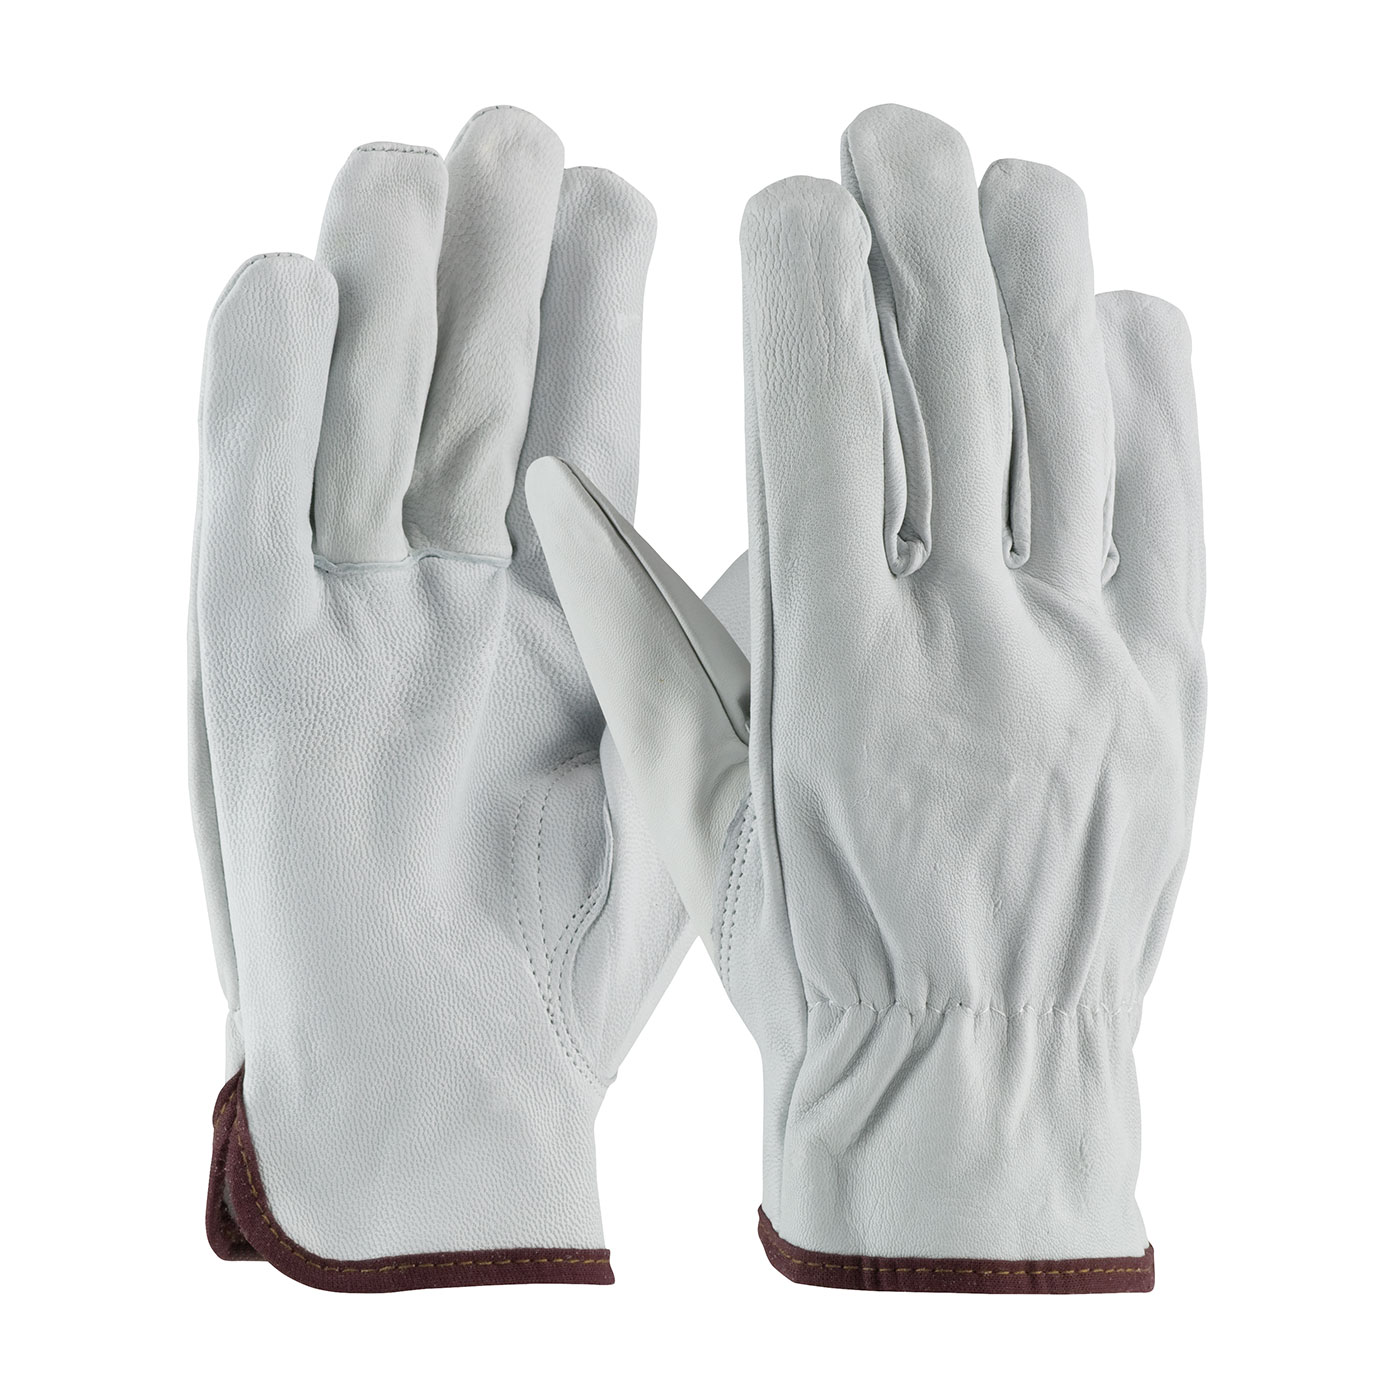 PIP®  Economy Grade Top Grain Goatskin Leather Drivers Glove - Keystone Thumb #71-3601